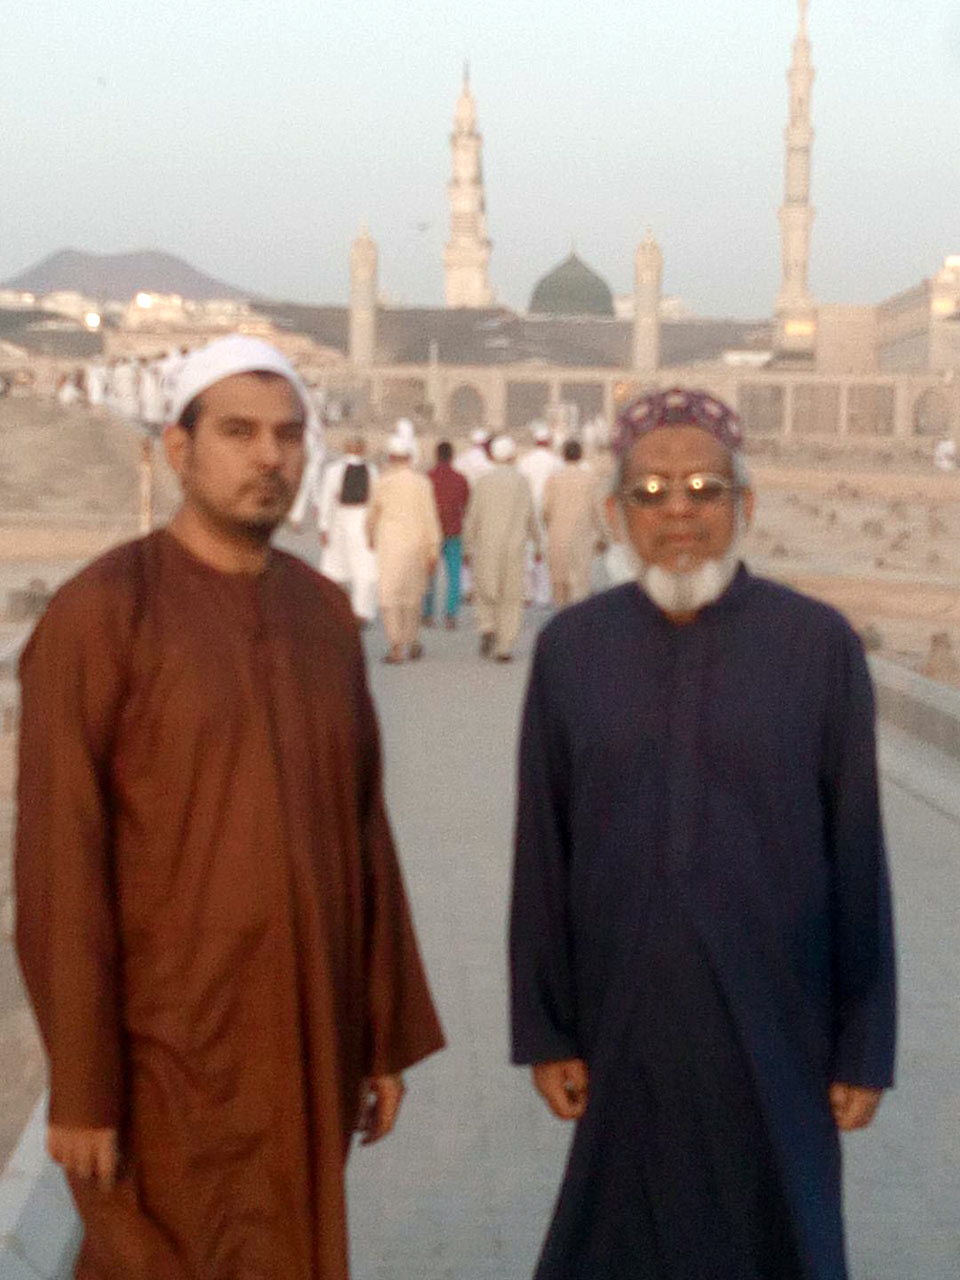 Kamran A. Khan and Engr. Iqbal A. Khan are inside the Jannat Ul Baqi